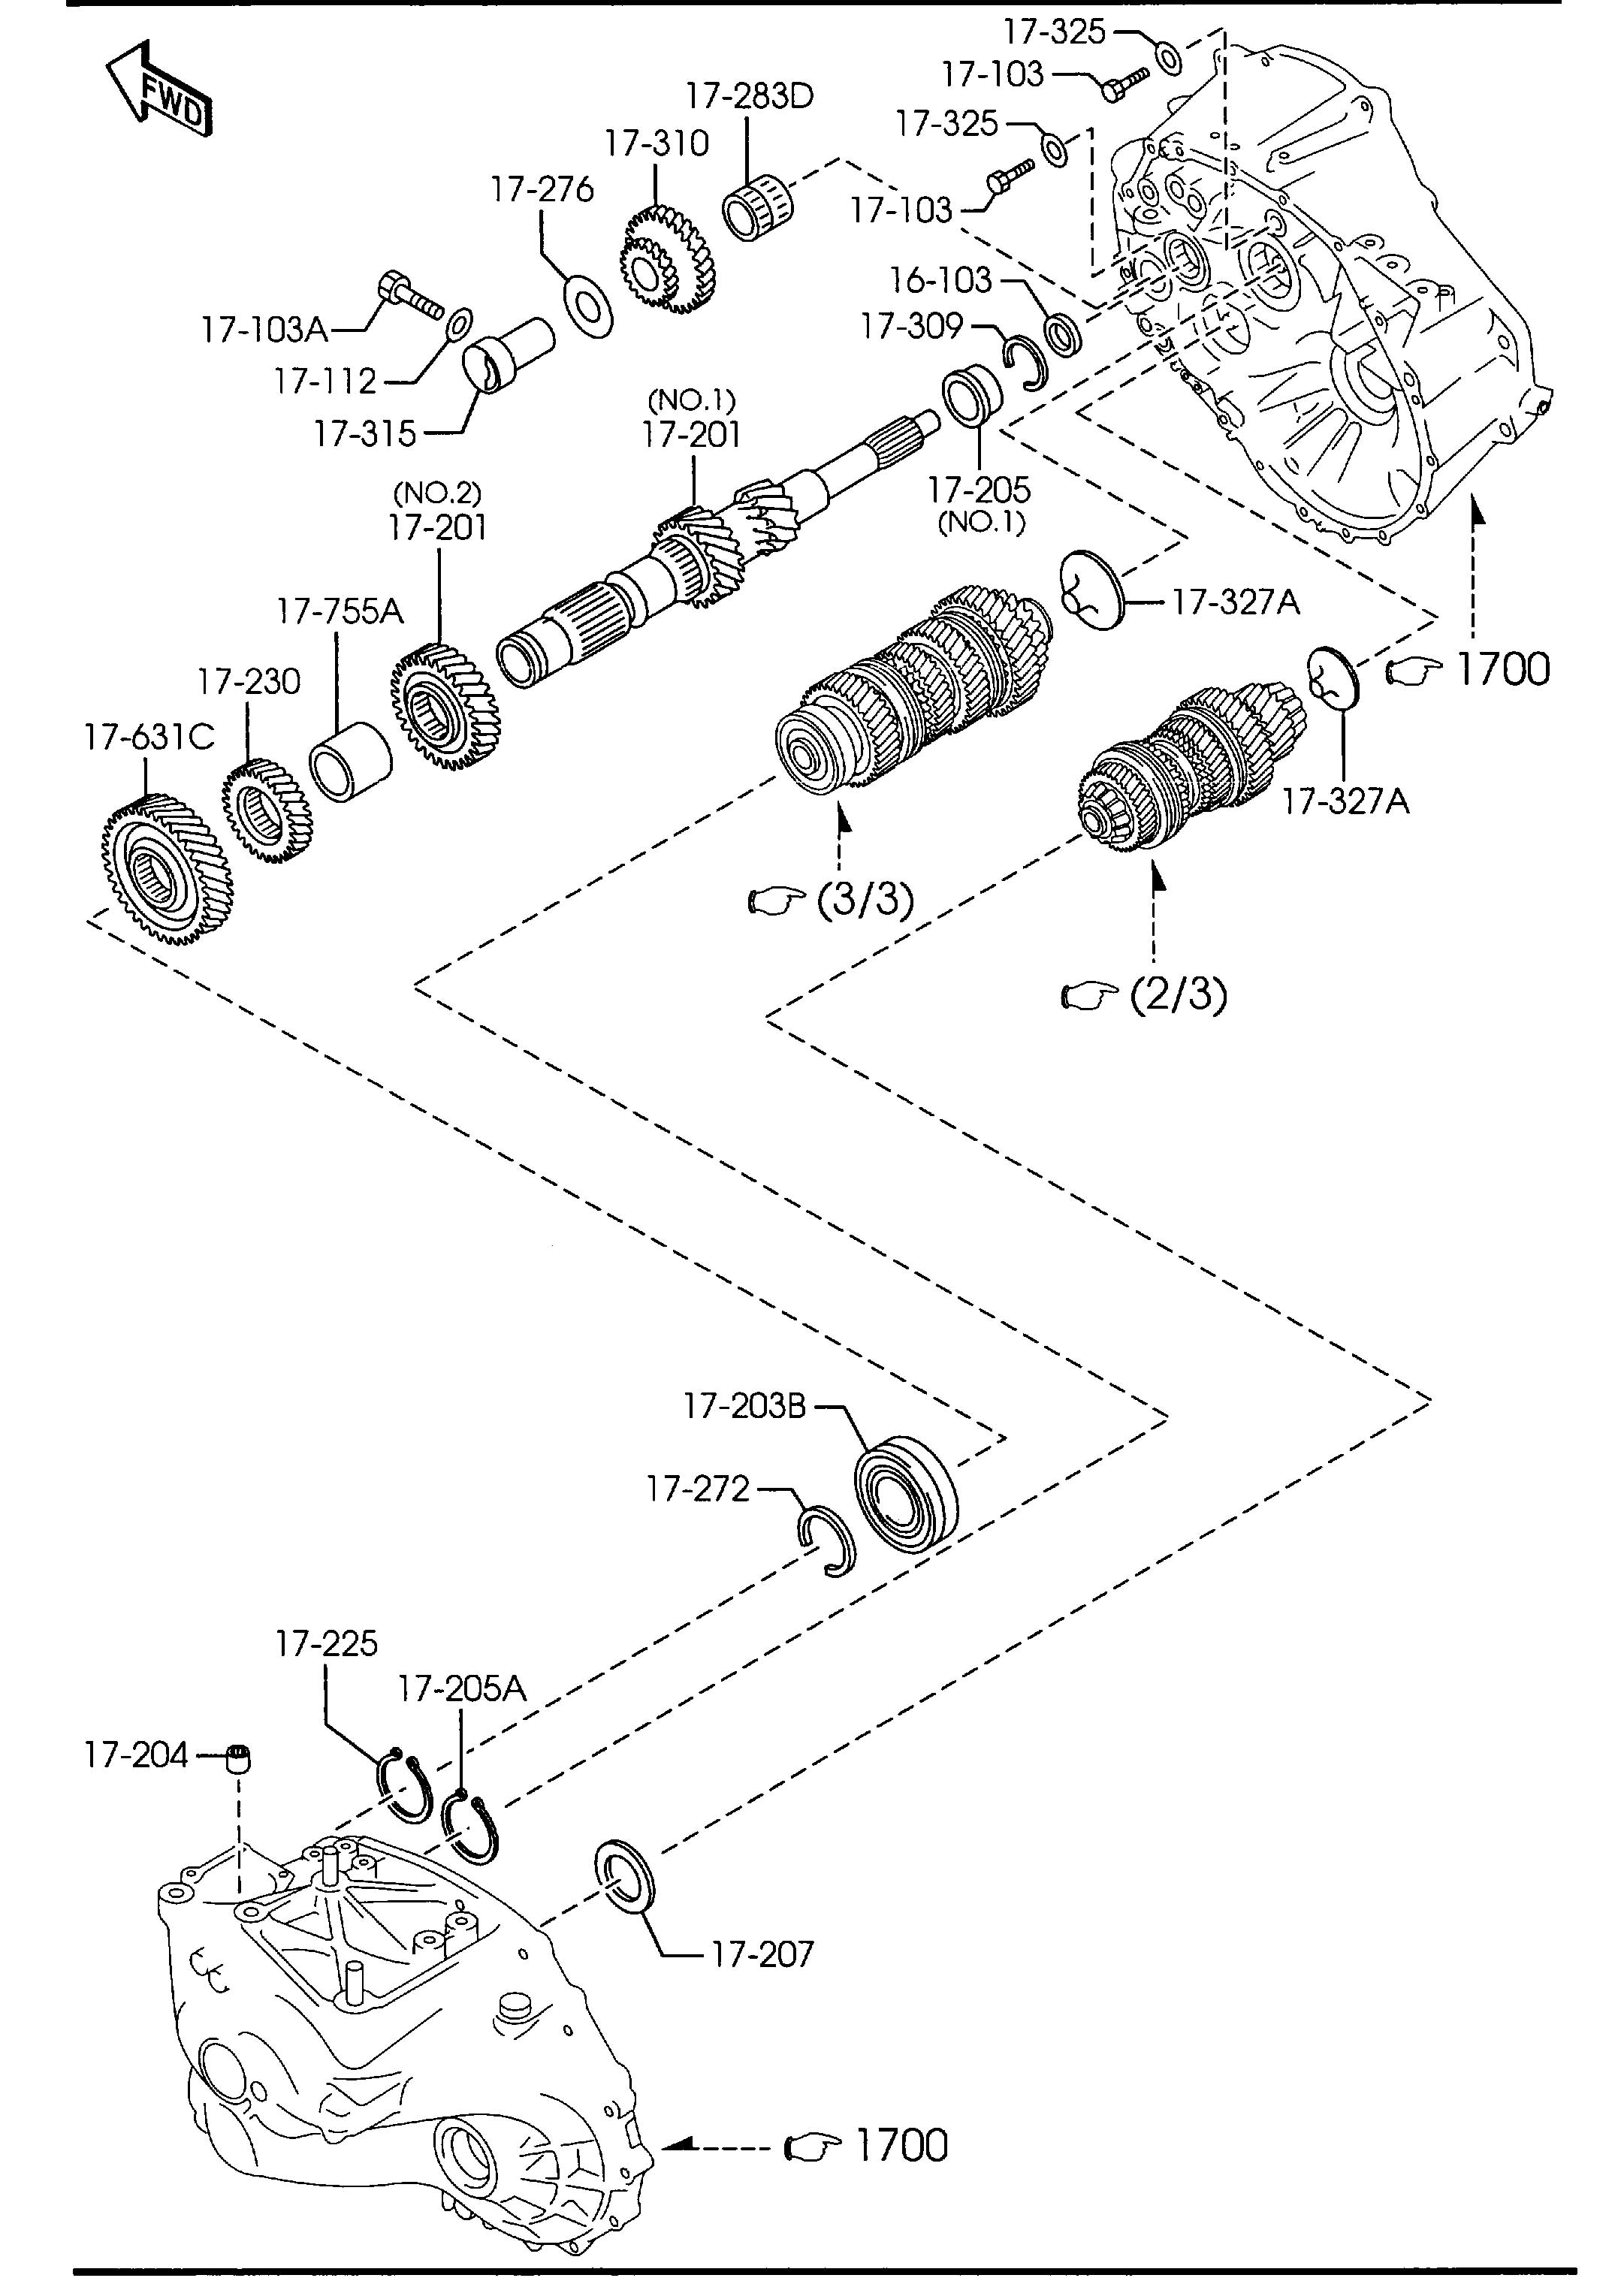 Diagram MANUAL TRANSMISSION GEARS (6-SPEED)(2300CC) for your Mazda Mazda 3